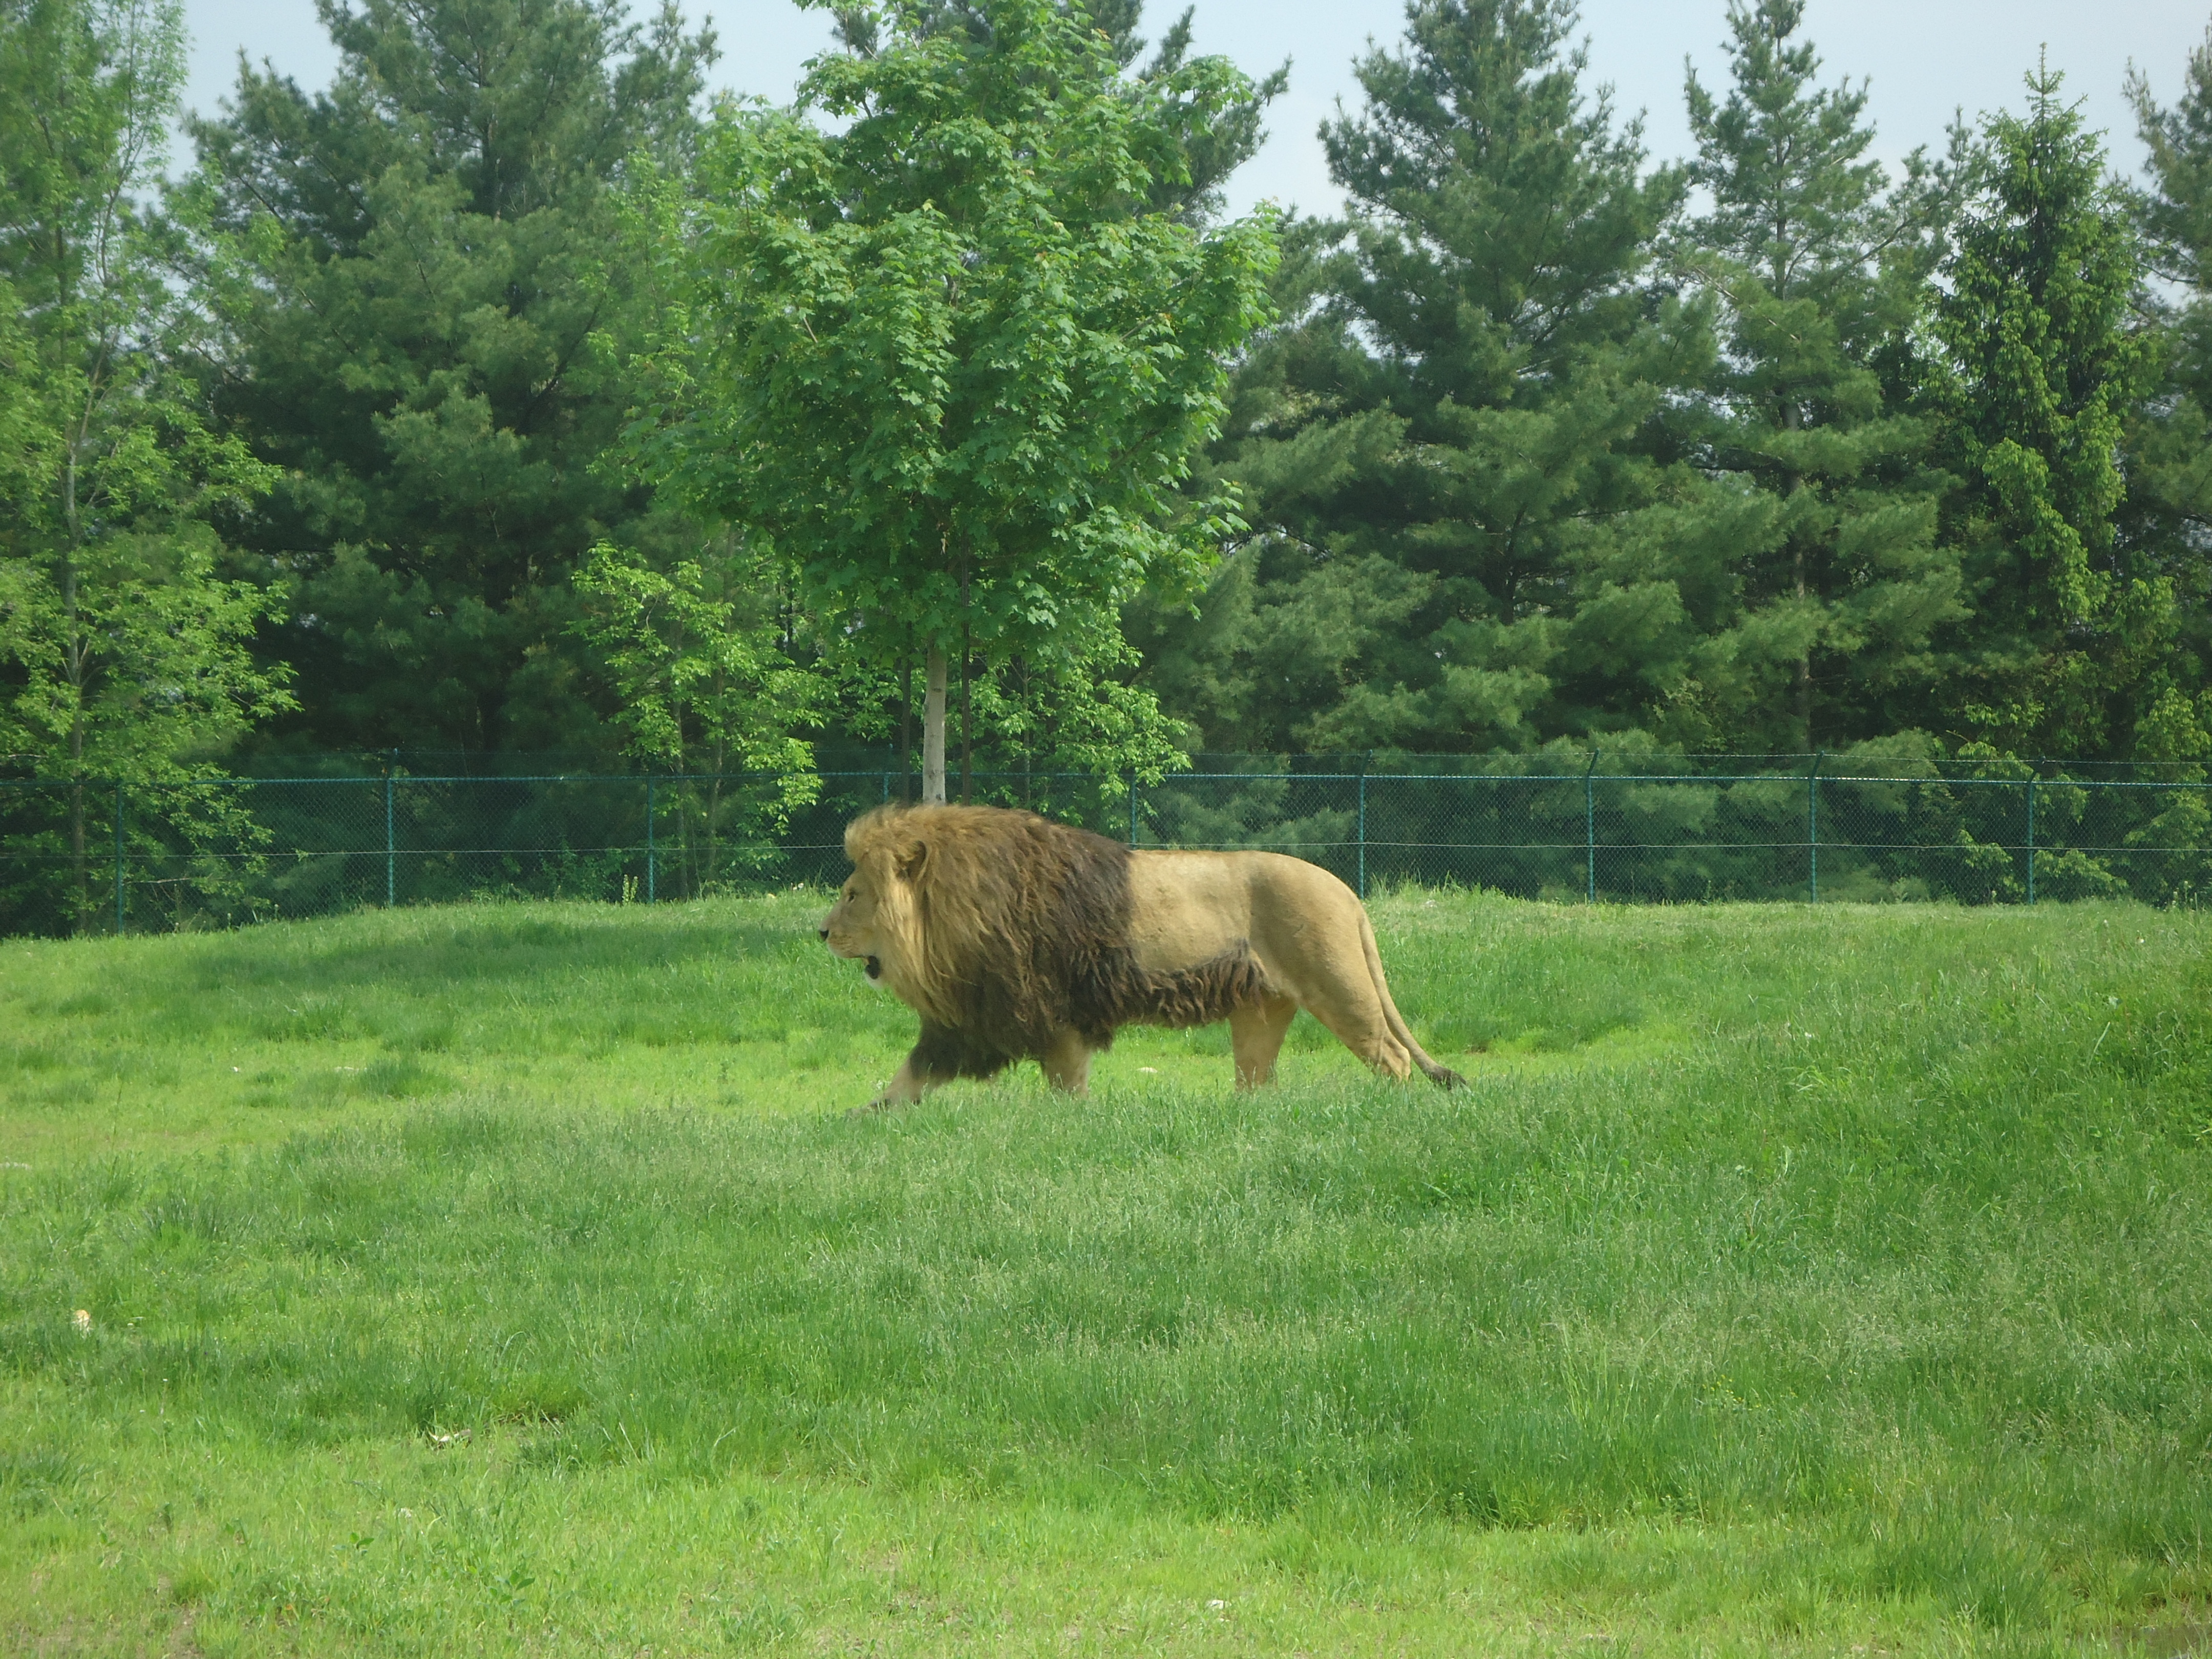 mountain lion habitat range with Lions Habitat on Lions Habitat furthermore 12 Cute Baby Animals Bring Fresh Mood together with Cougars In Tennessee Fact Or Fiction together with Cougar in addition Wildlife Officials Deny Mountain Lions Are Back In The Blue Ridge Mountains.